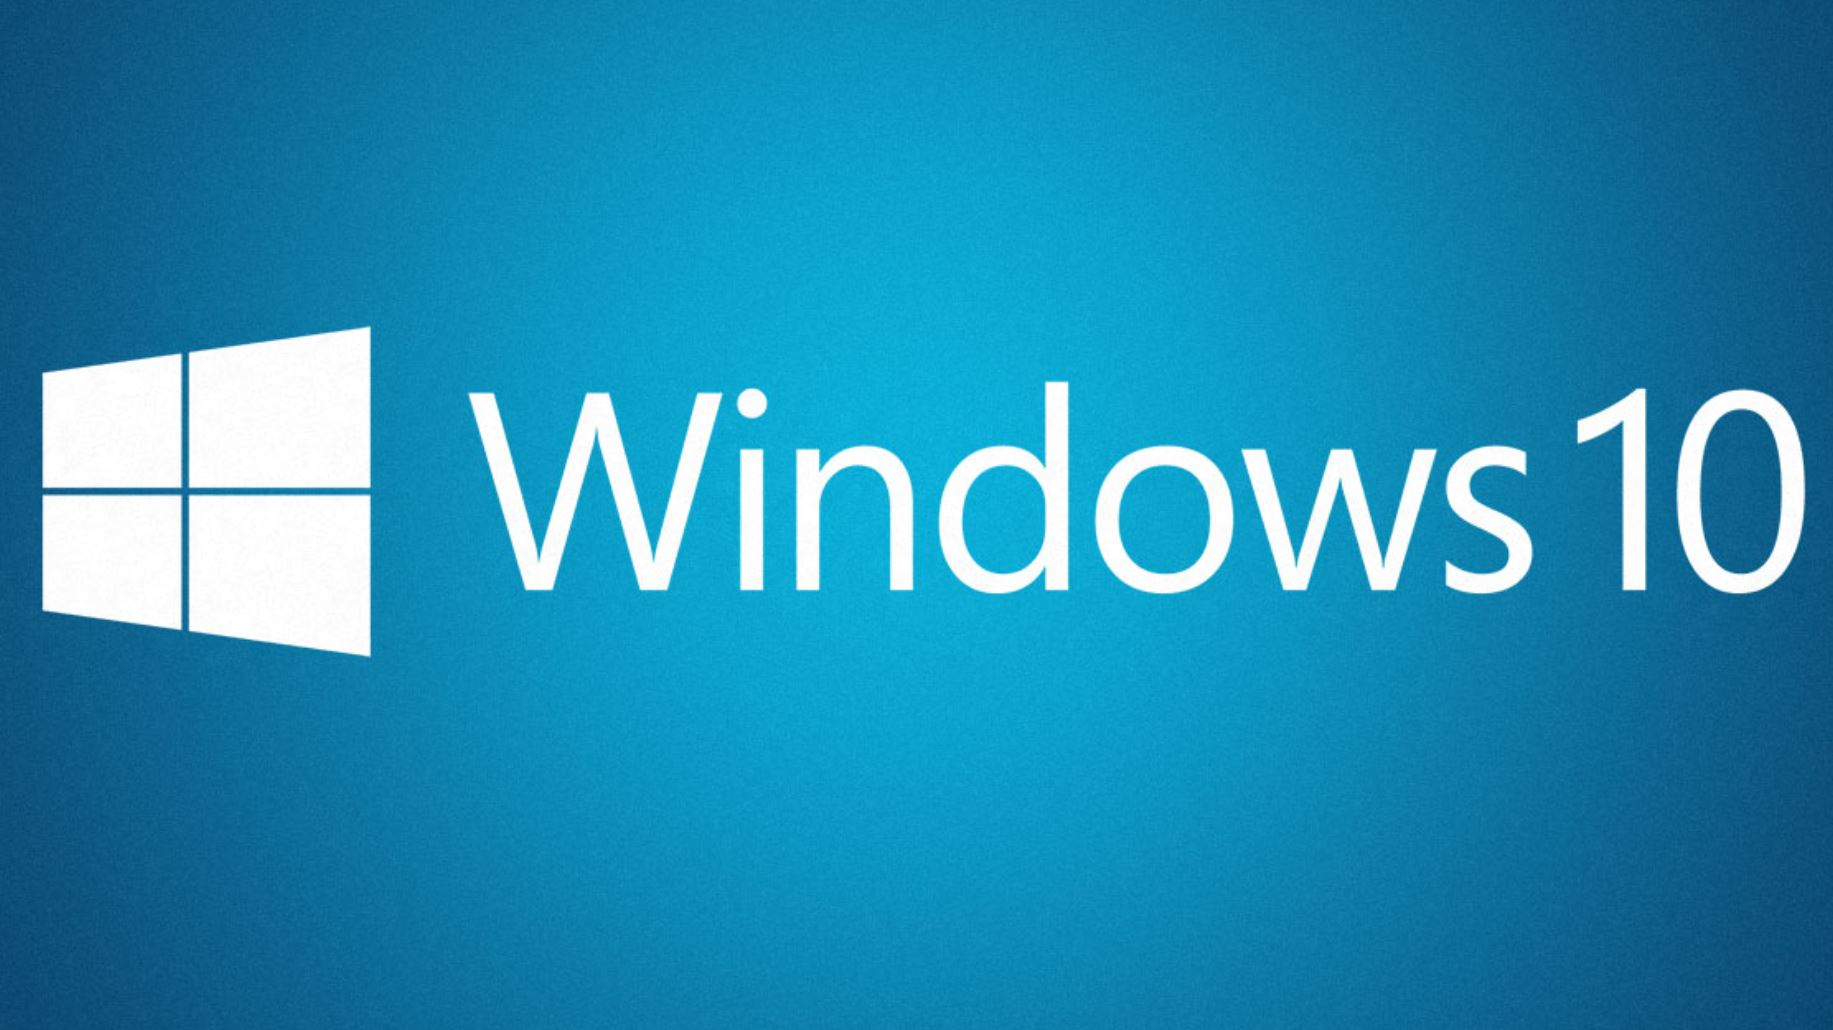 More Than 110 Million People have already embraced Windows 10